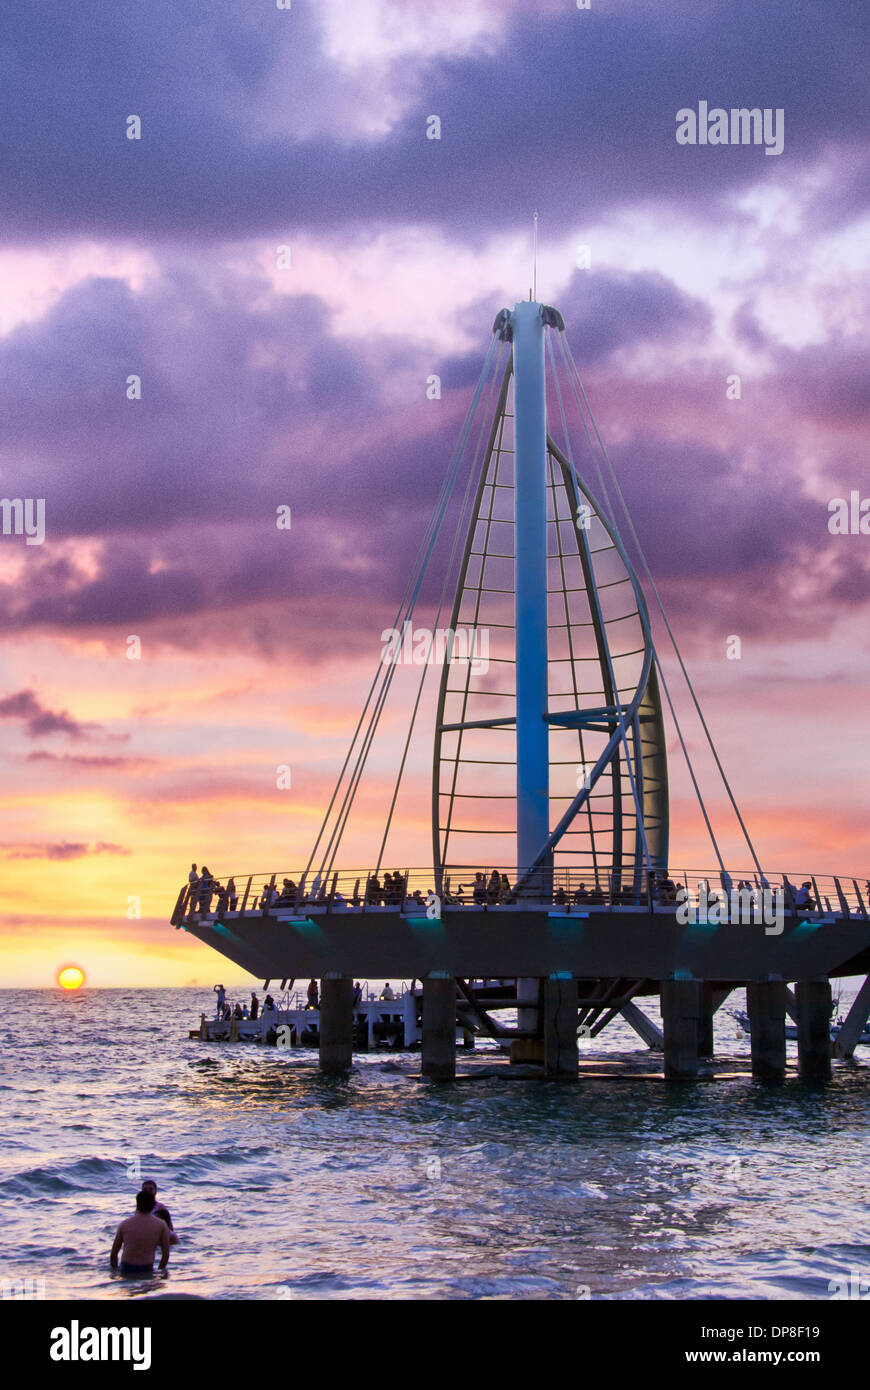 Sail sculpture at sunset, Puerto Vallarta, Jalisco, Mexico - Stock Image